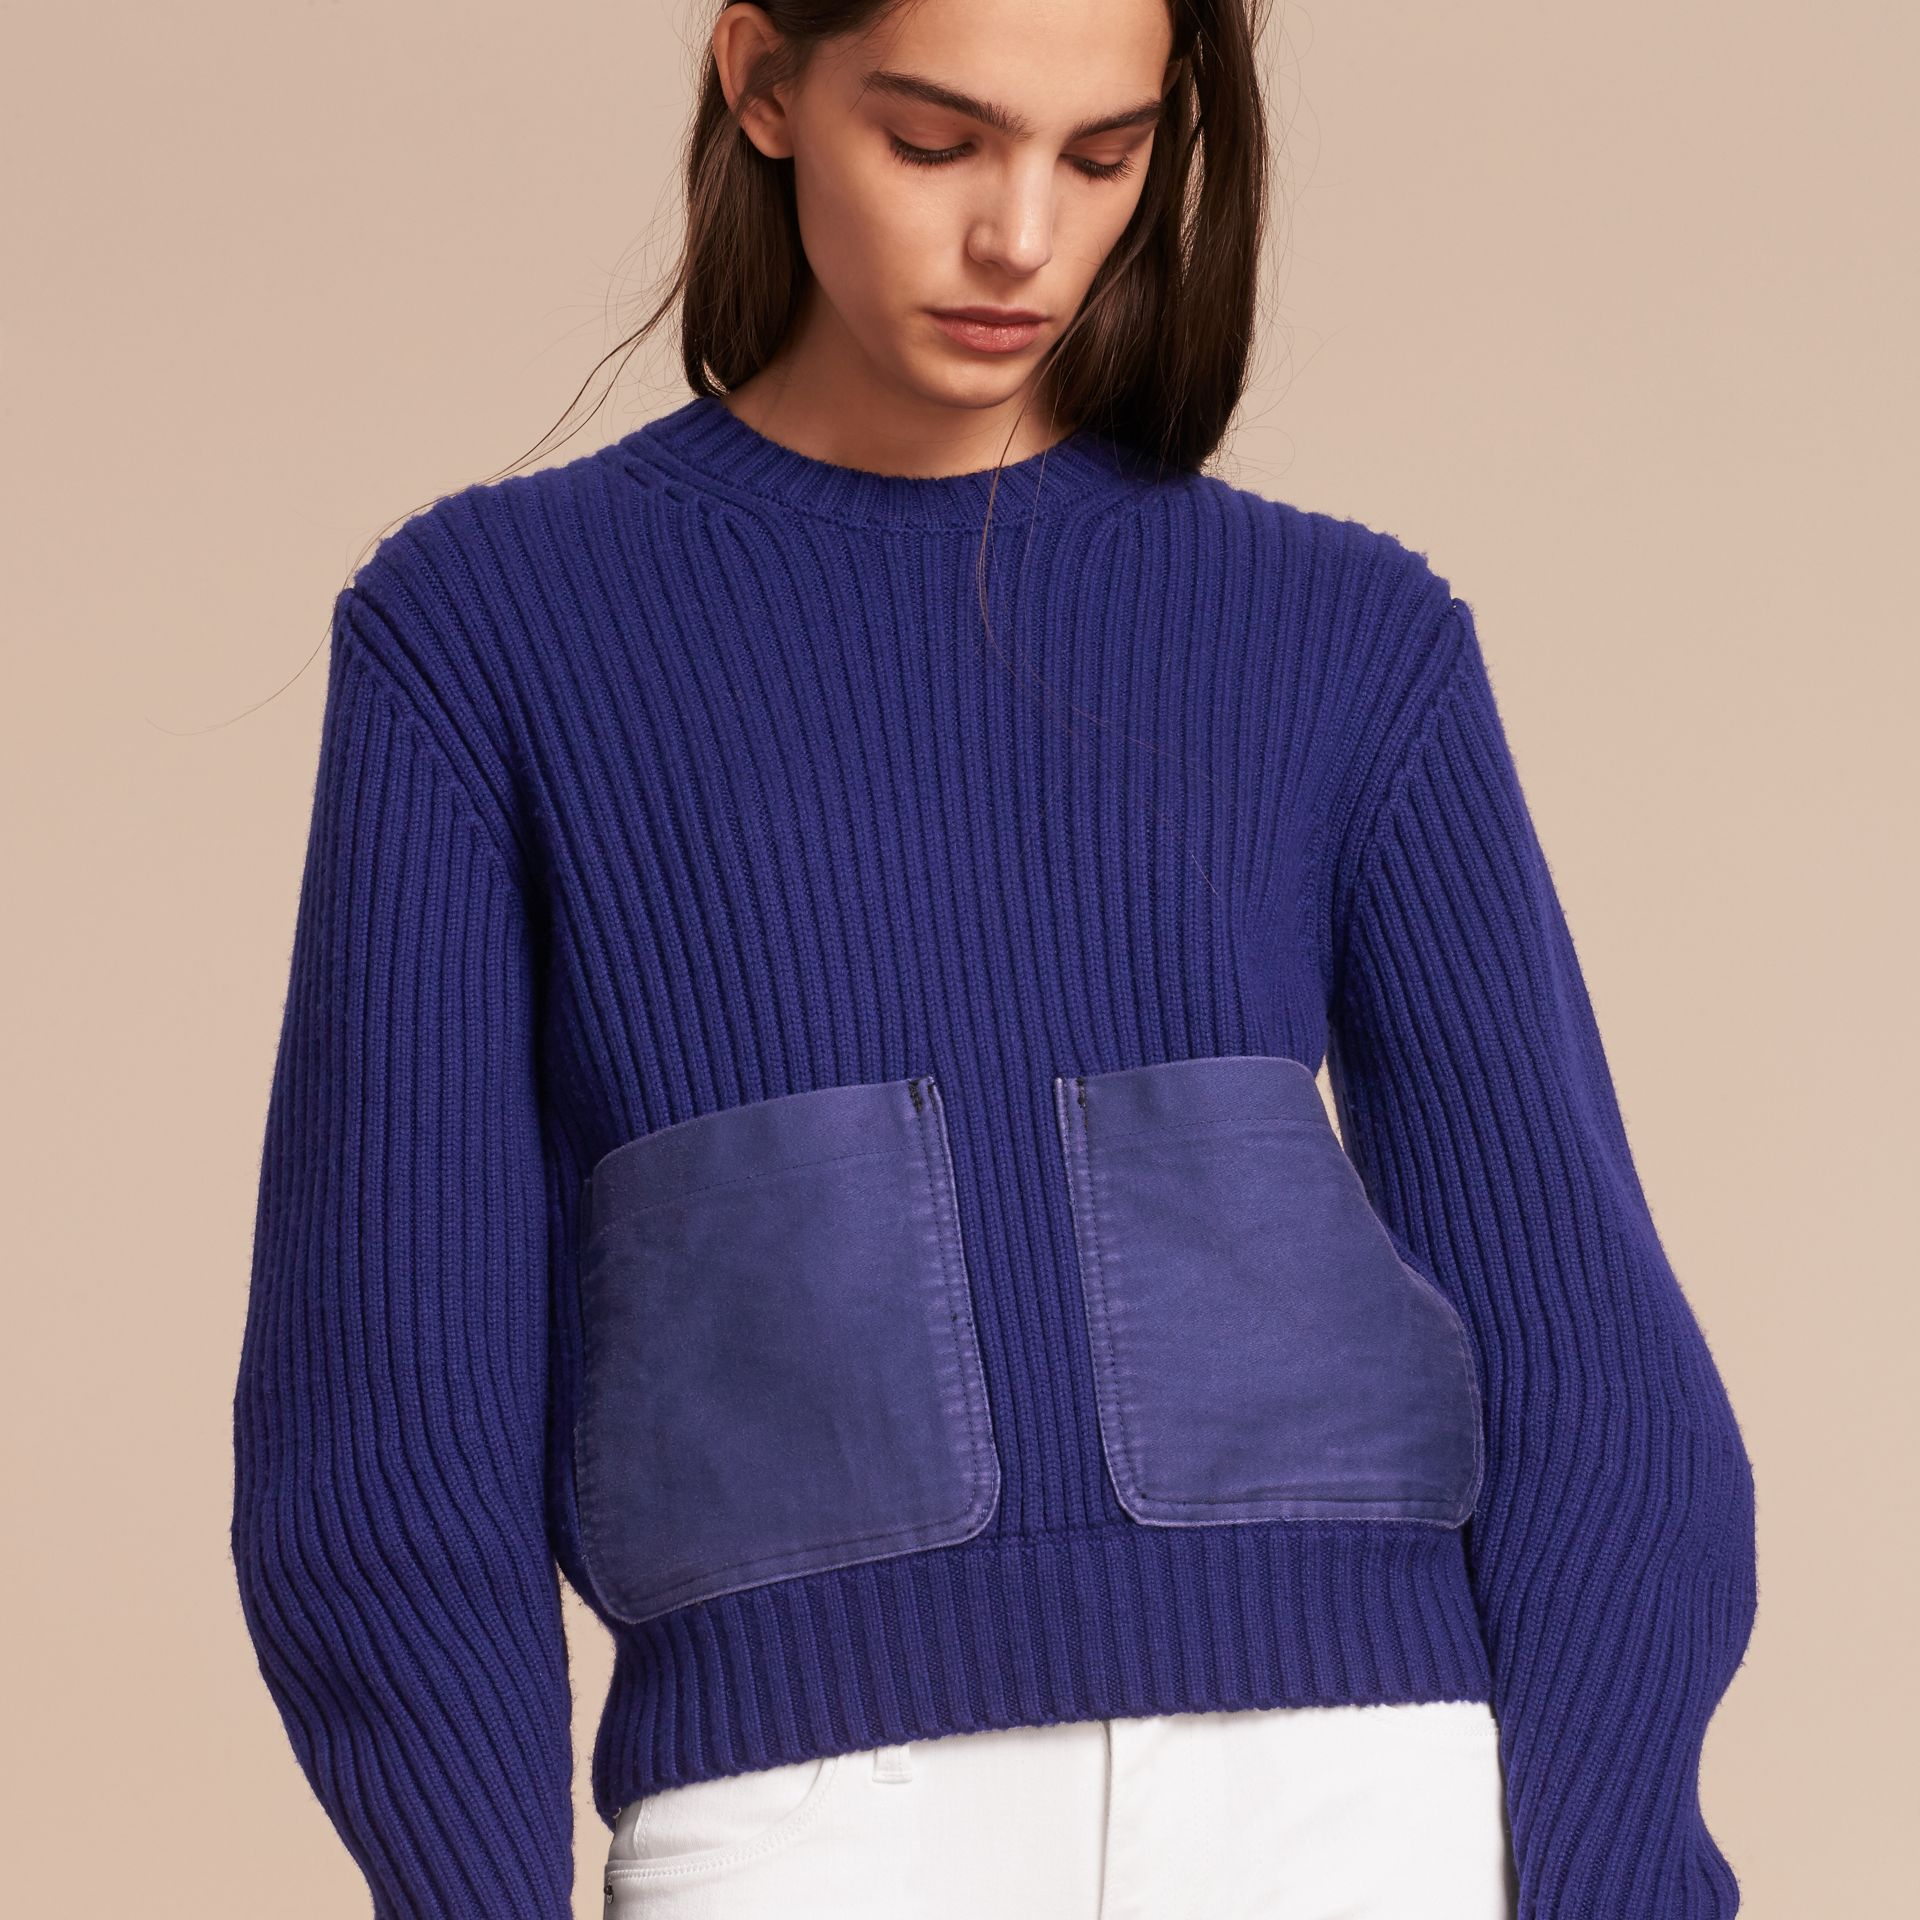 Oversize Pocket Detail Rib Knit Cashmere Cotton Sweater in Bright Navy - Women | Burberry - gallery image 6